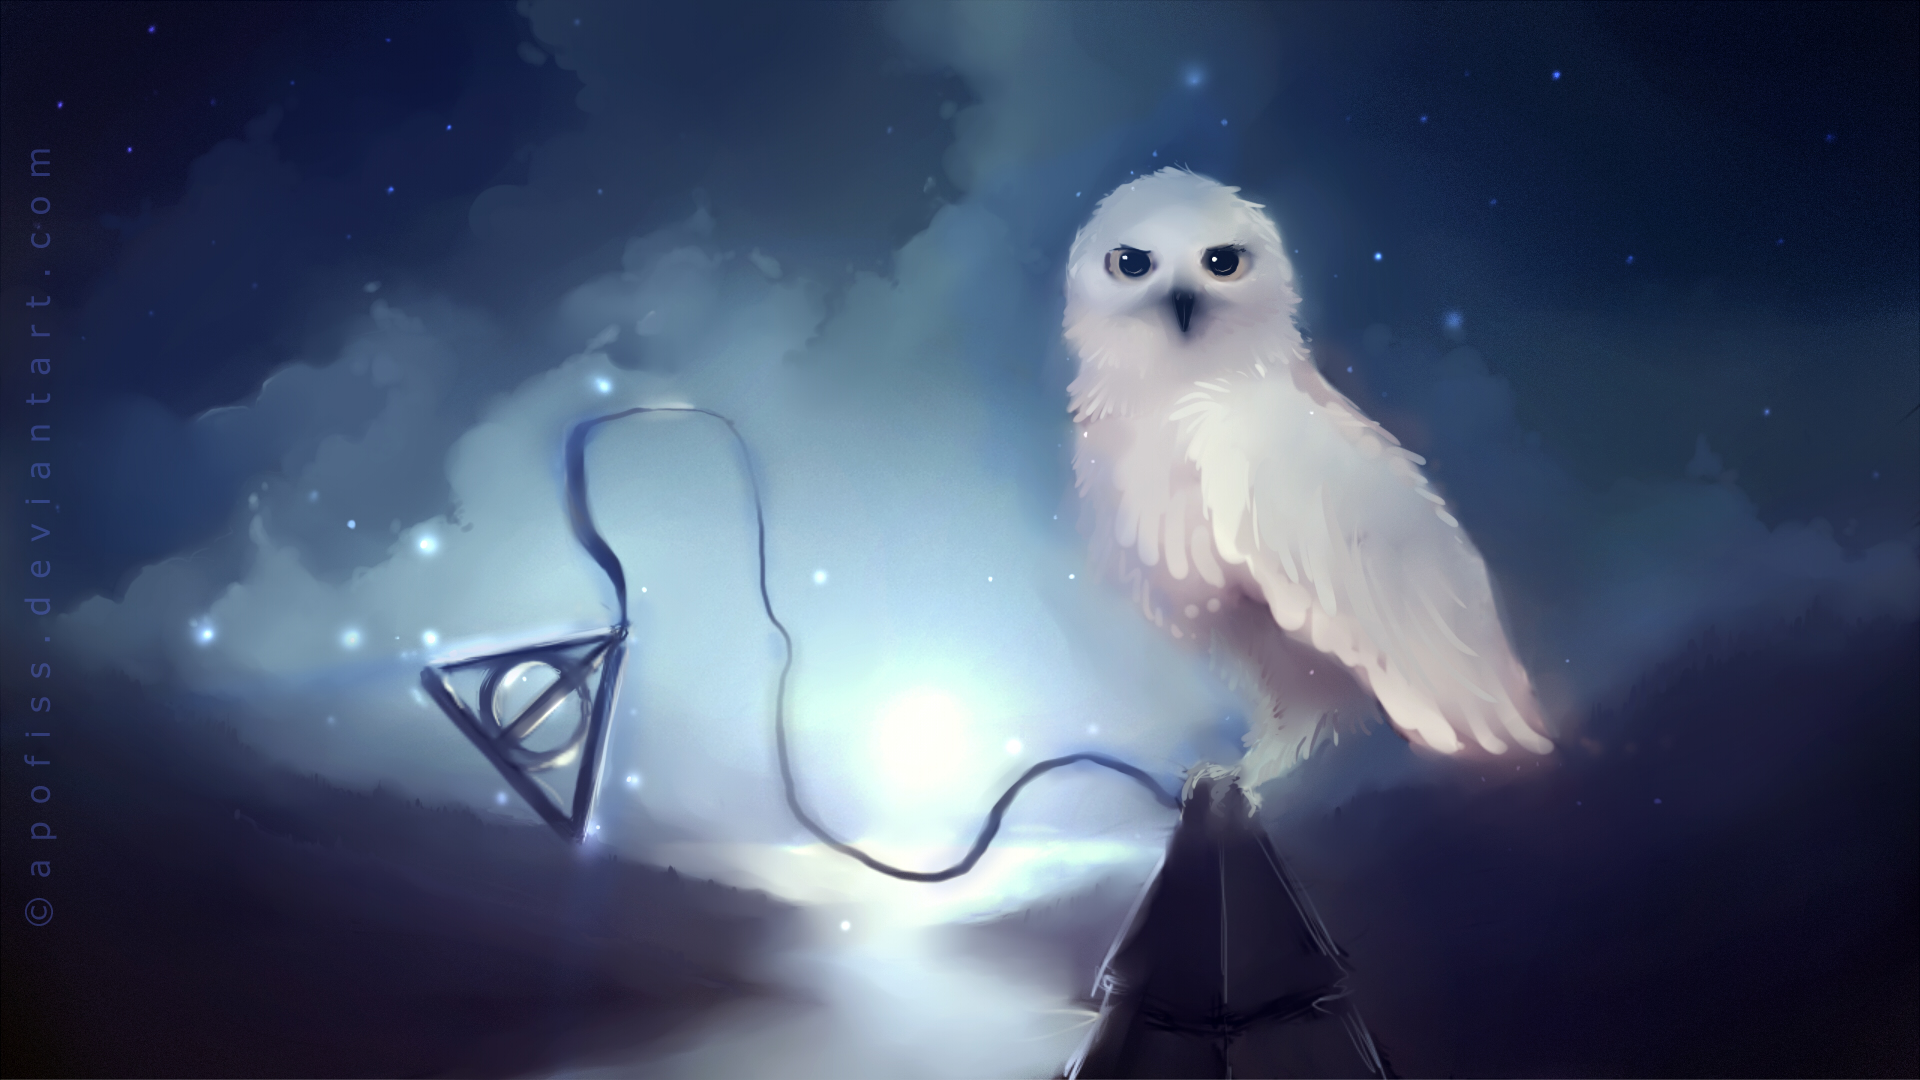 Amazing Wallpaper Harry Potter Fanart - Hedwig  Best Photo Reference_139068.jpg